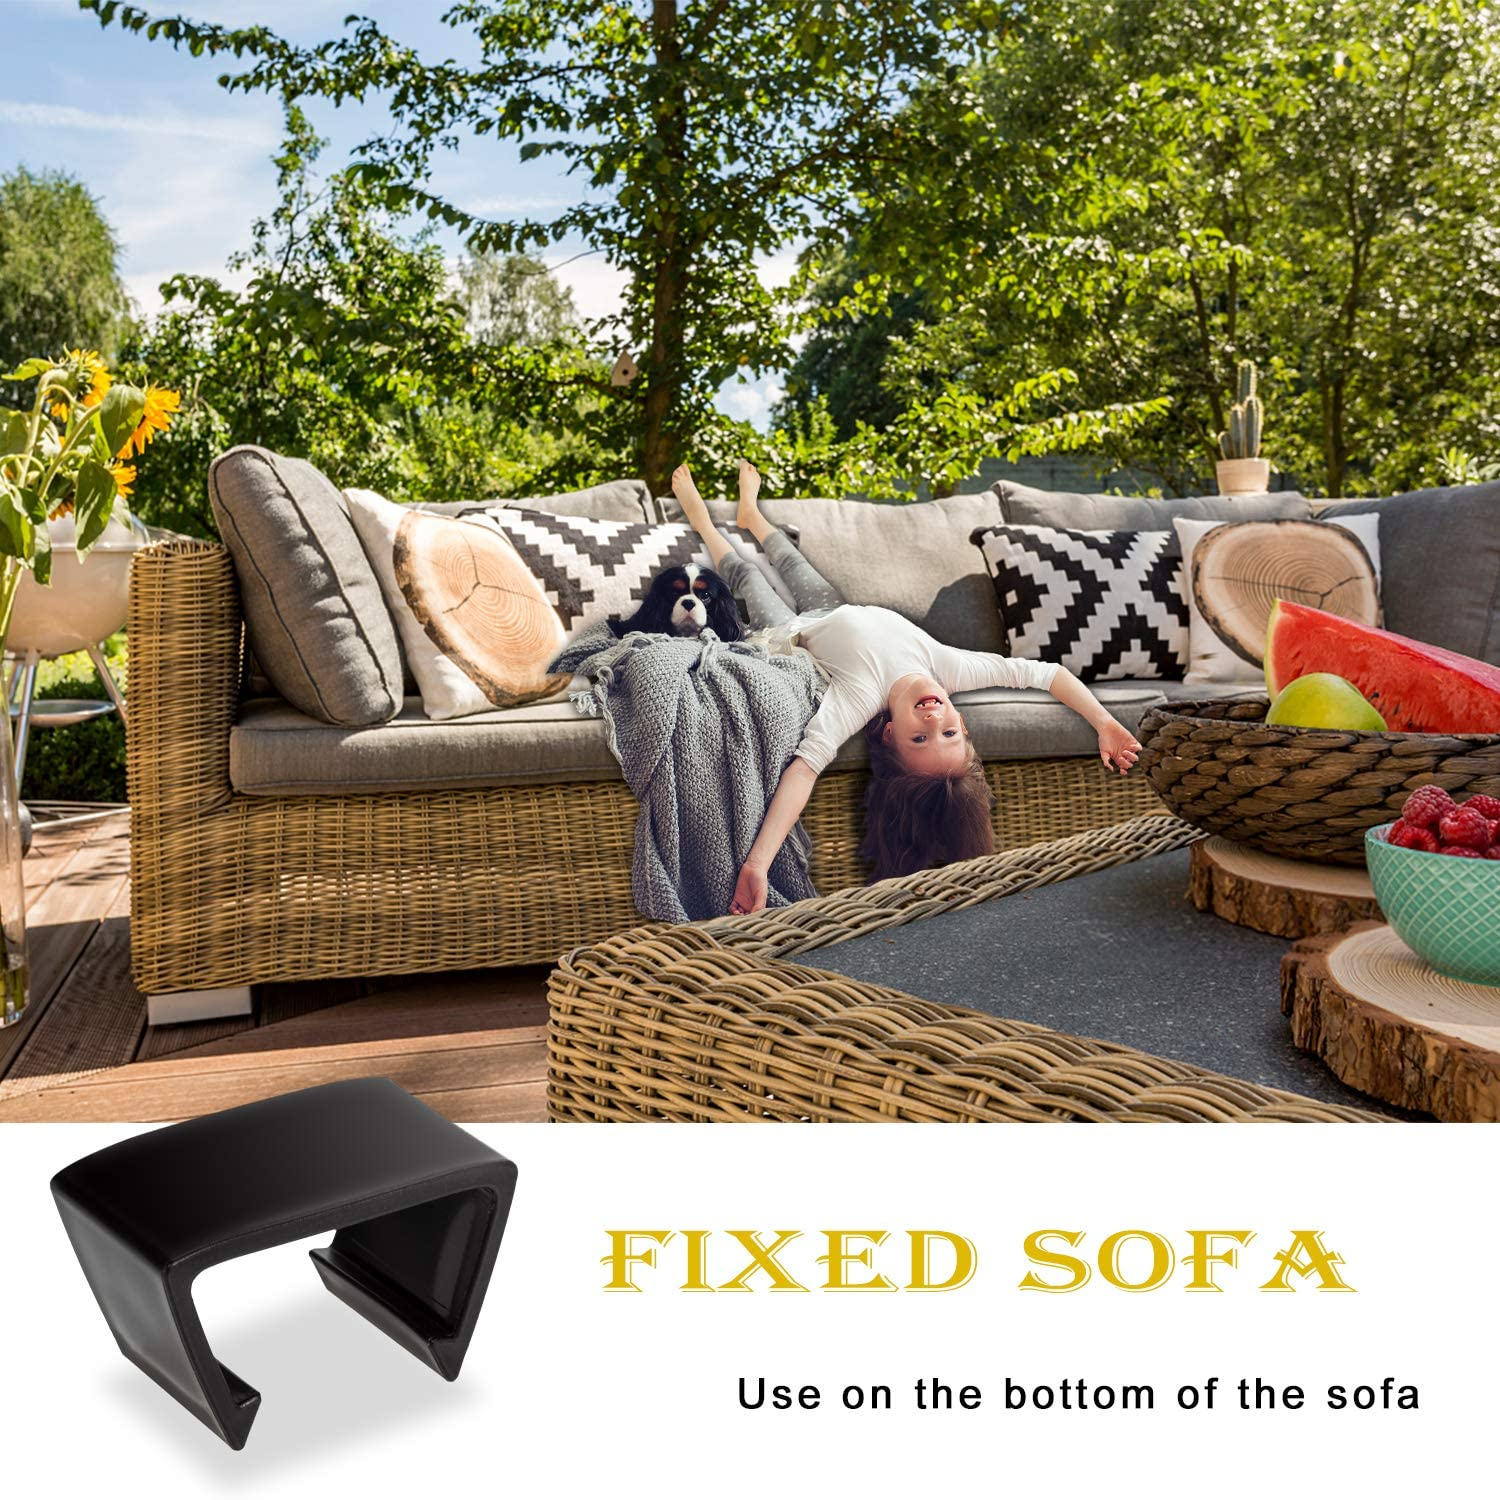 Acimone Outdoor Patio Wicker Furniture Clips 12PCS Sectional Sofa Rattan Furniture Clips Chair Fasteners